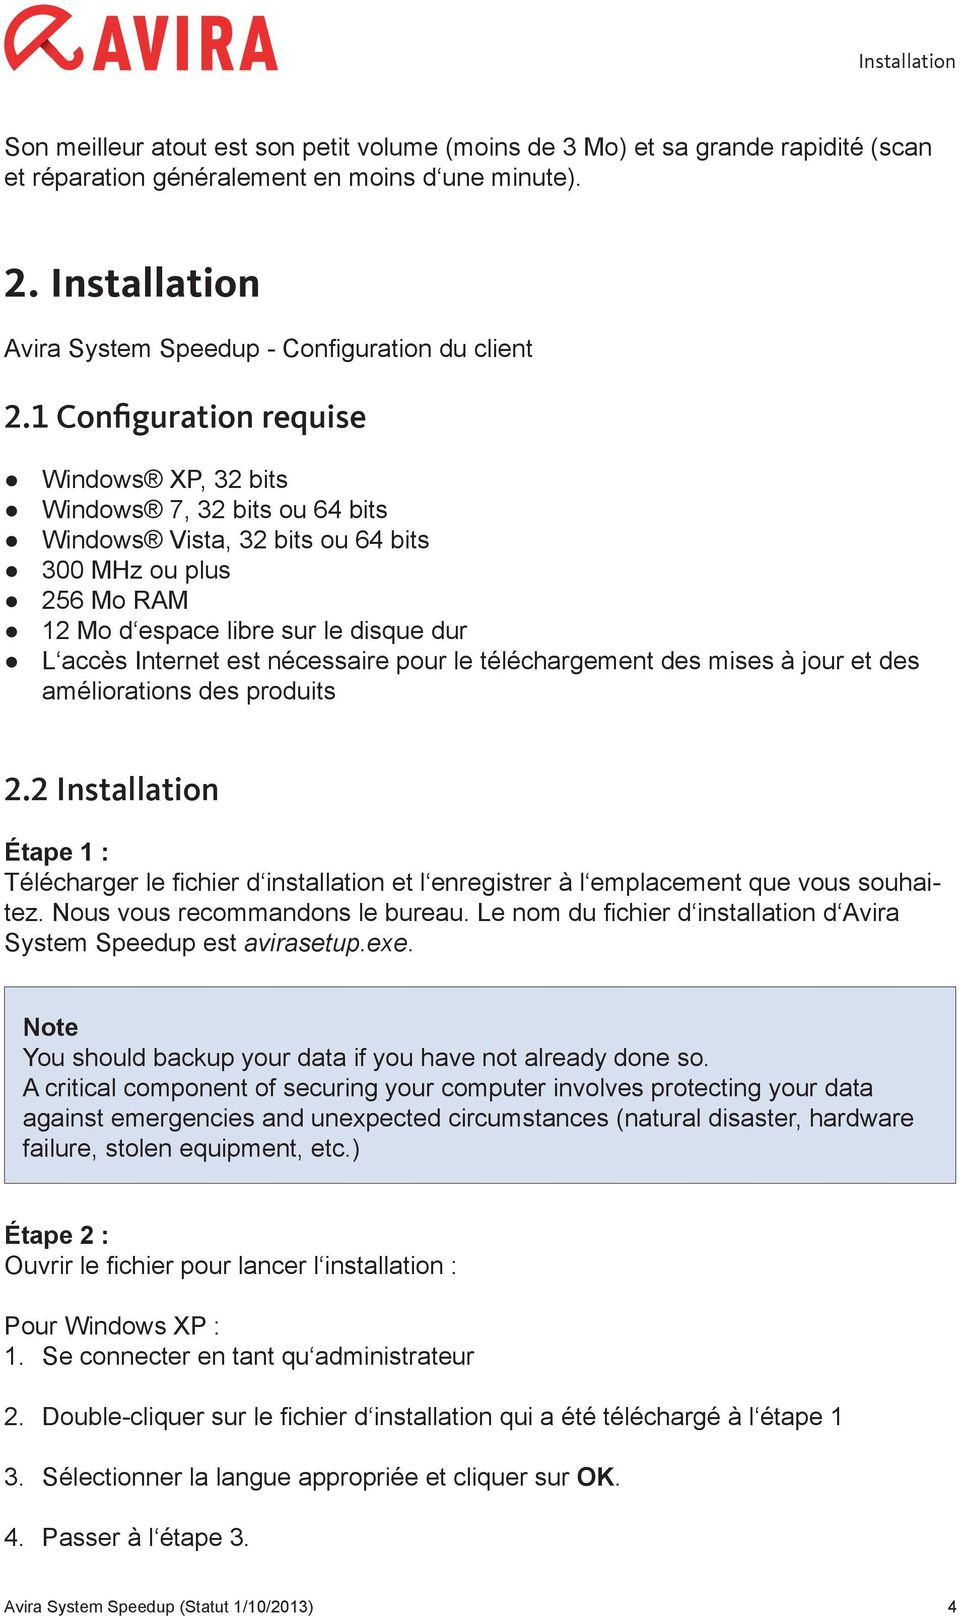 1 Configuration requise Windows XP, 32 bits Windows 7, 32 bits ou 64 bits Windows Vista, 32 bits ou 64 bits 300 MHz ou plus 256 Mo RAM 12 Mo d espace libre sur le disque dur L accès Internet est